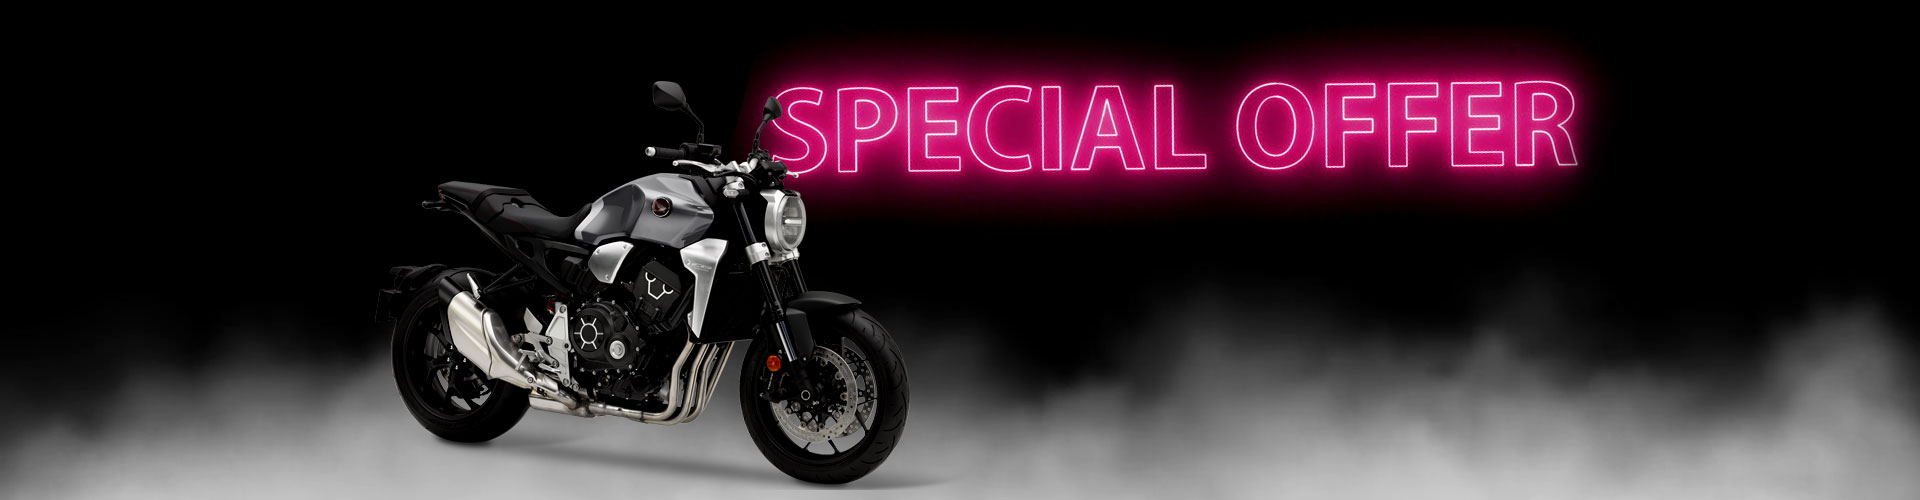 Honda motorcycle offers